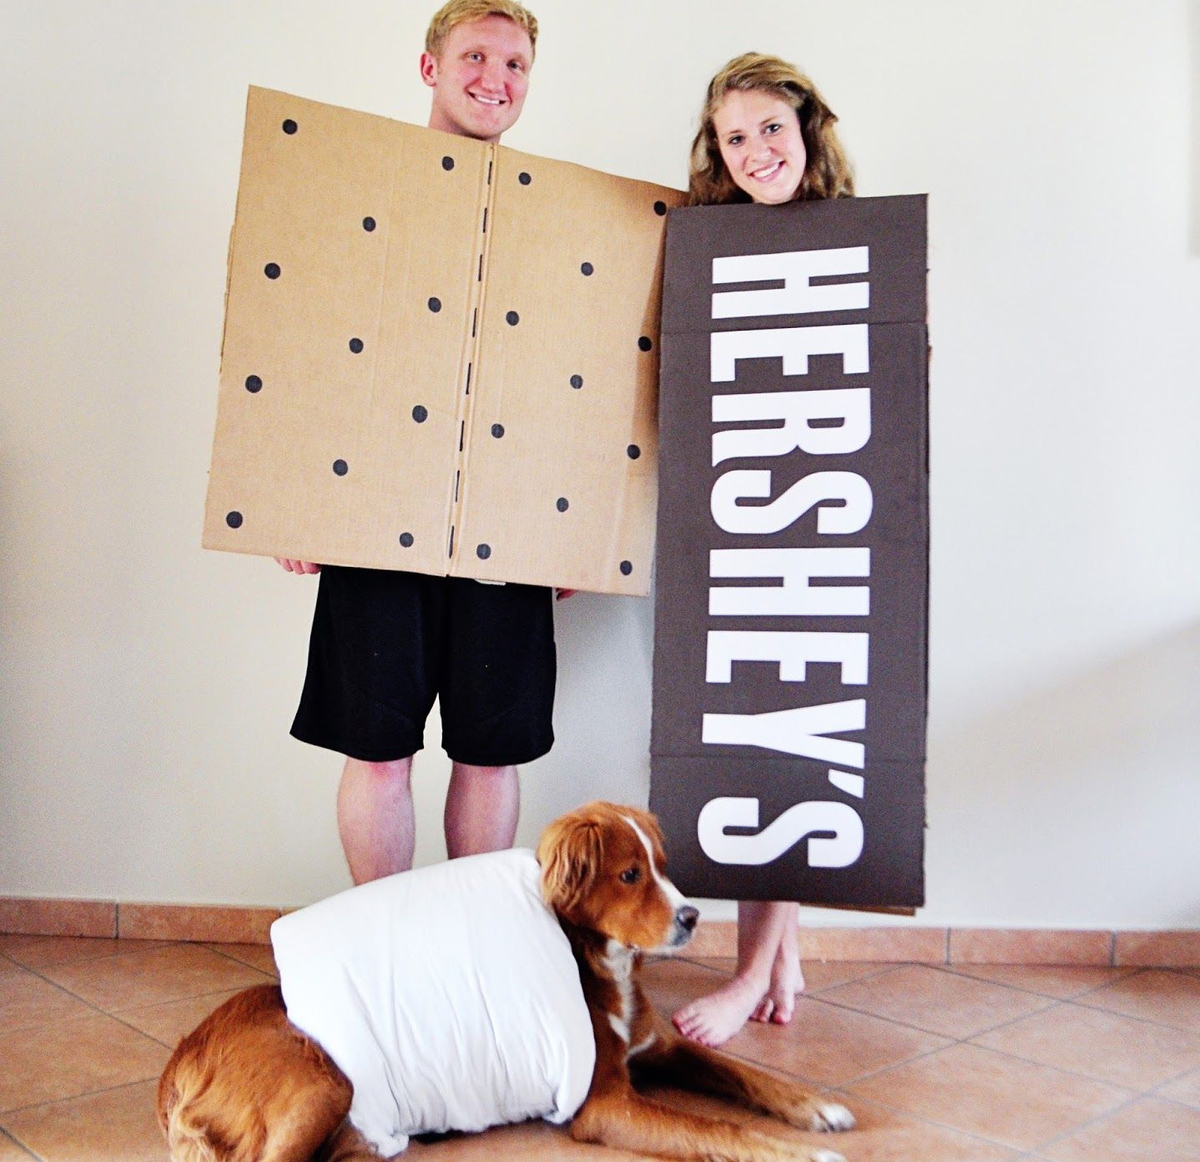 Couple dresses in a s'mores costume with dog